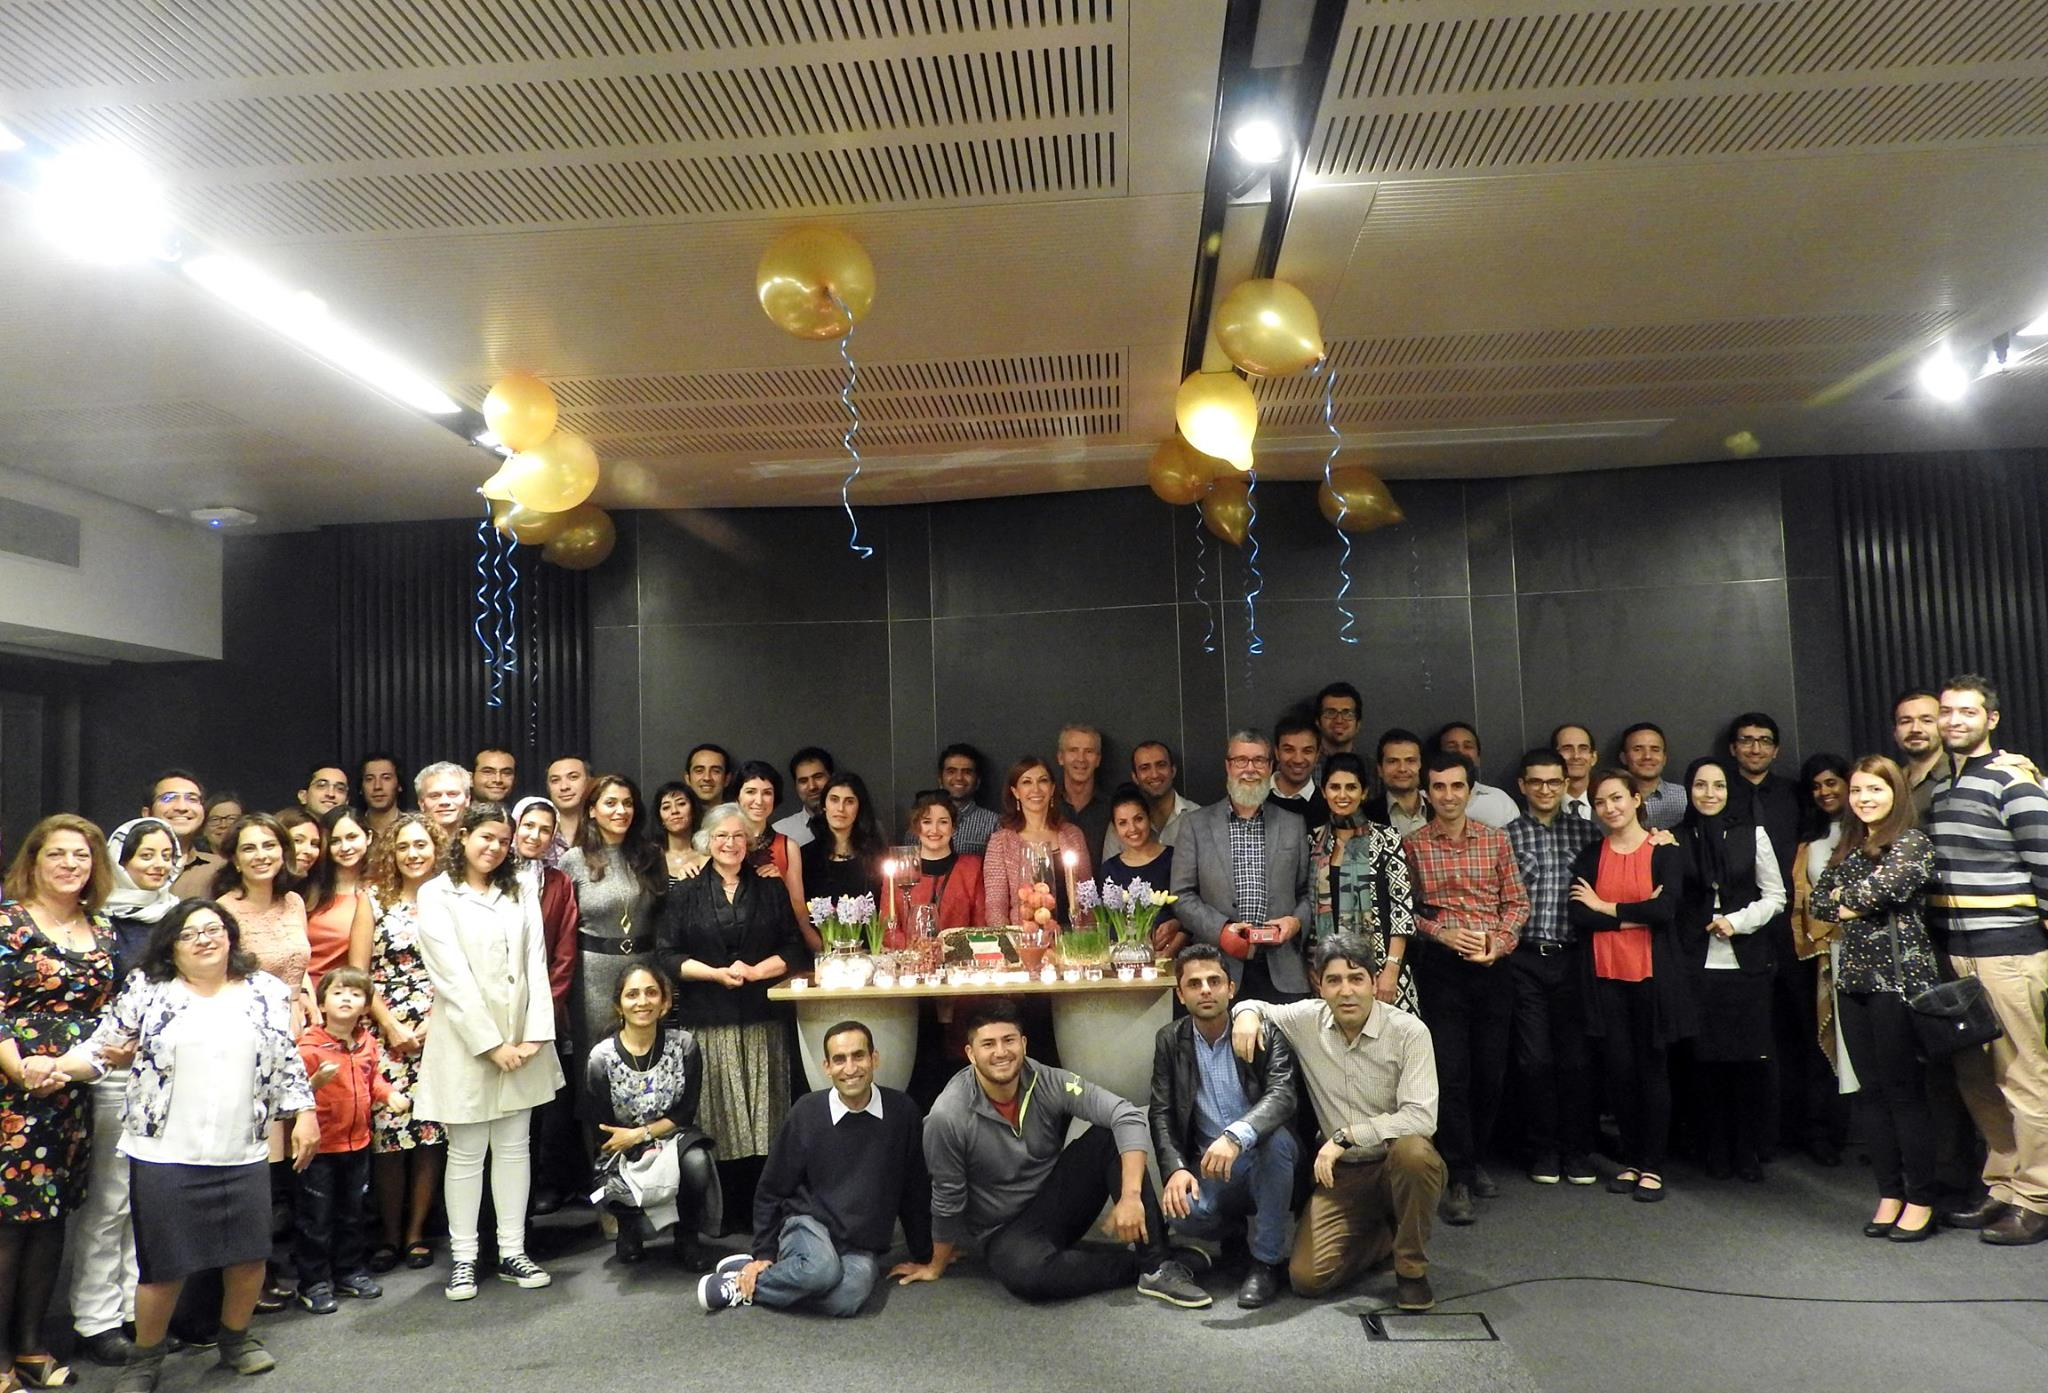 Photo: Morteza Saadatpourvahid About 30 PhD students were joined by friends and family members to celebrate  Nowruz at the University of Canterbury